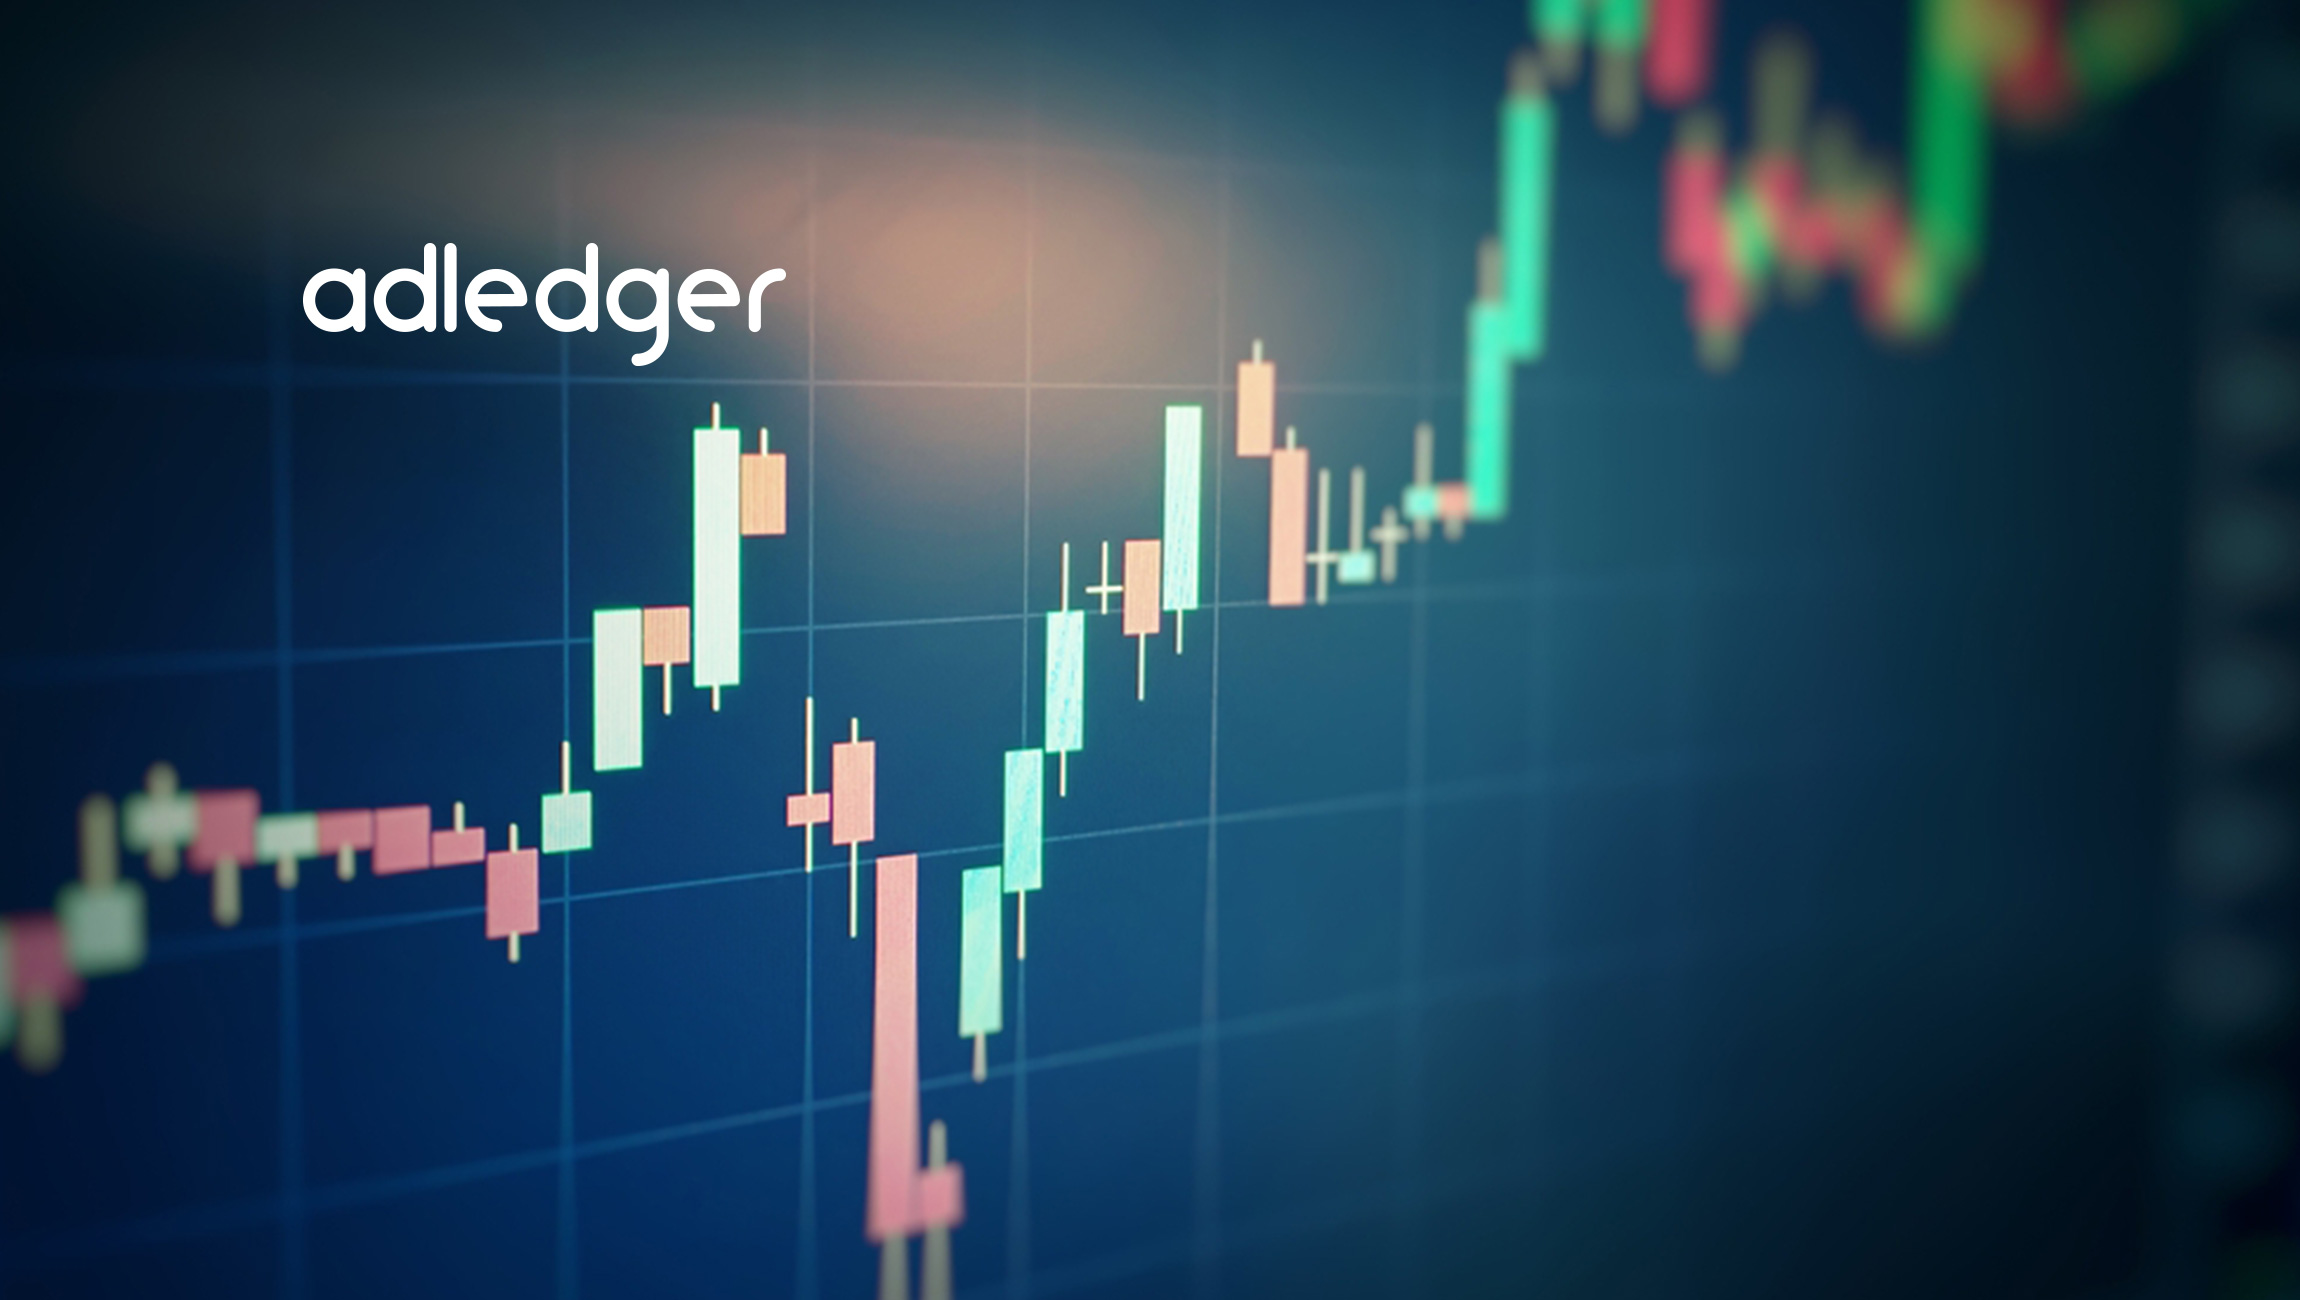 AdLedger Announces CryptoRTB Protocol For Digital Advertising